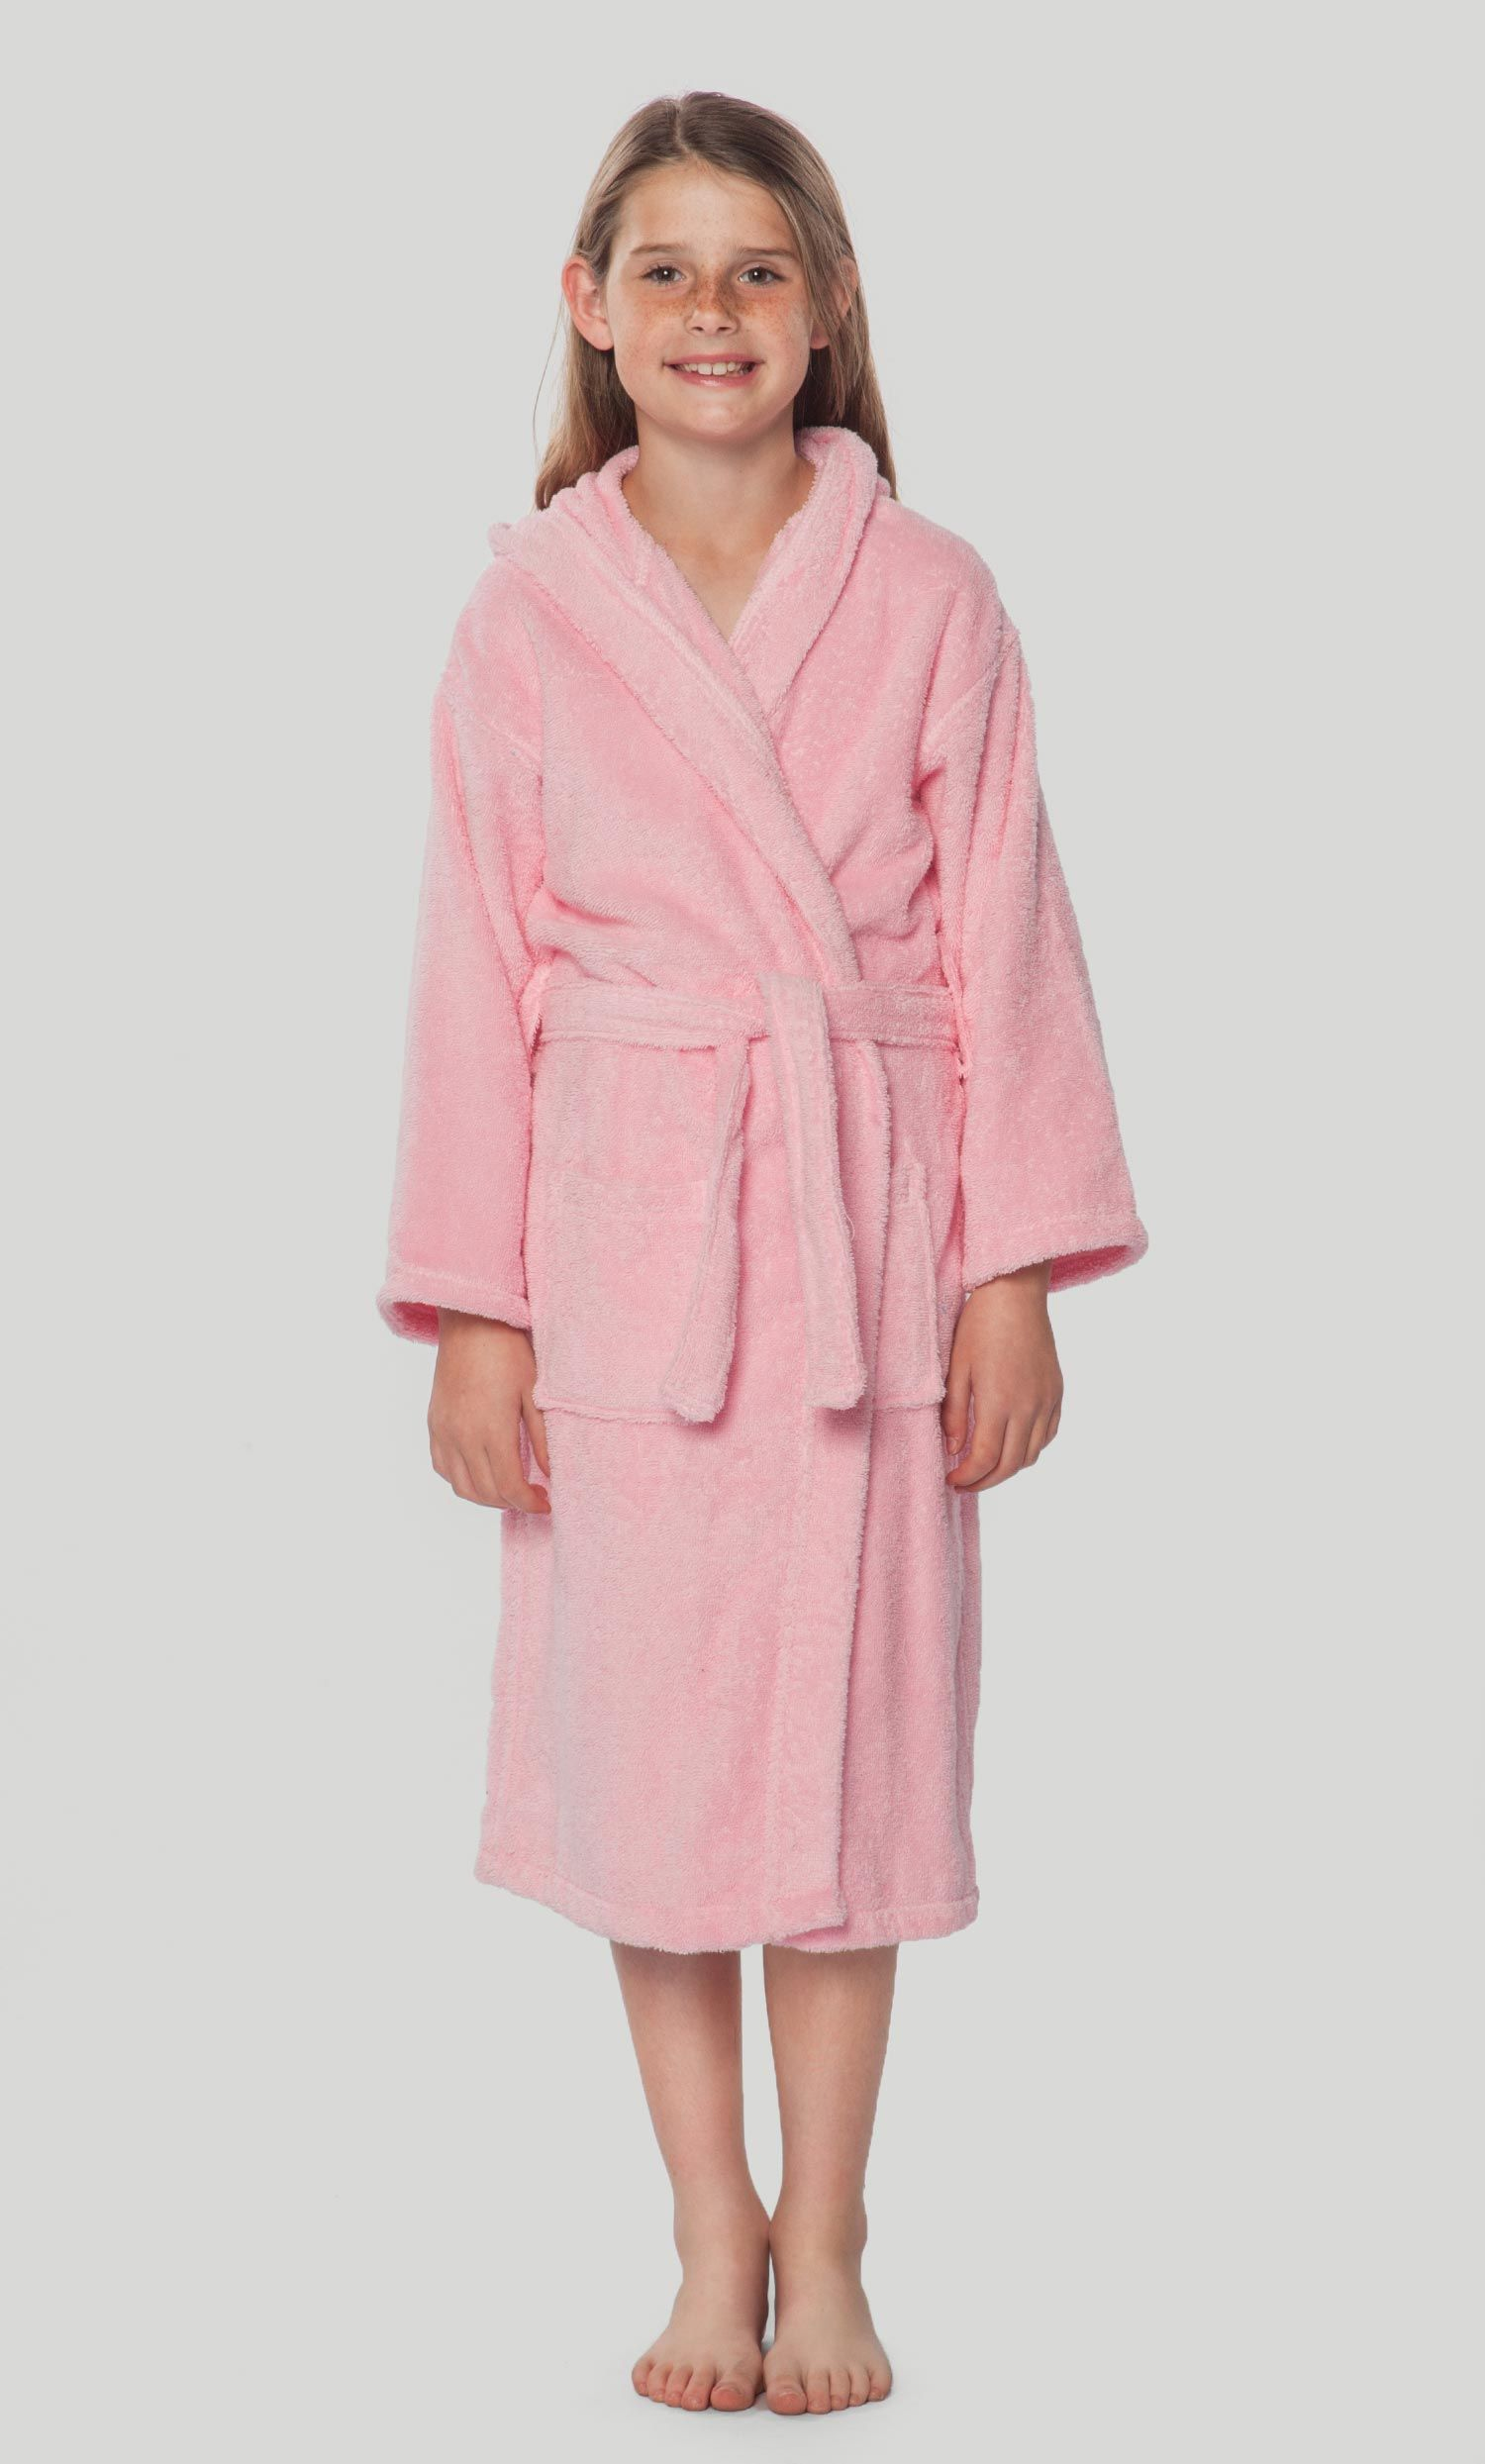 012f7b7eb4 Kids Bathrobes    Terry Kids Hooded Bathrobes    100% Turkish Cotton Pink  Hooded Terry Kid s Bathrobe - Wholesale bathrobes